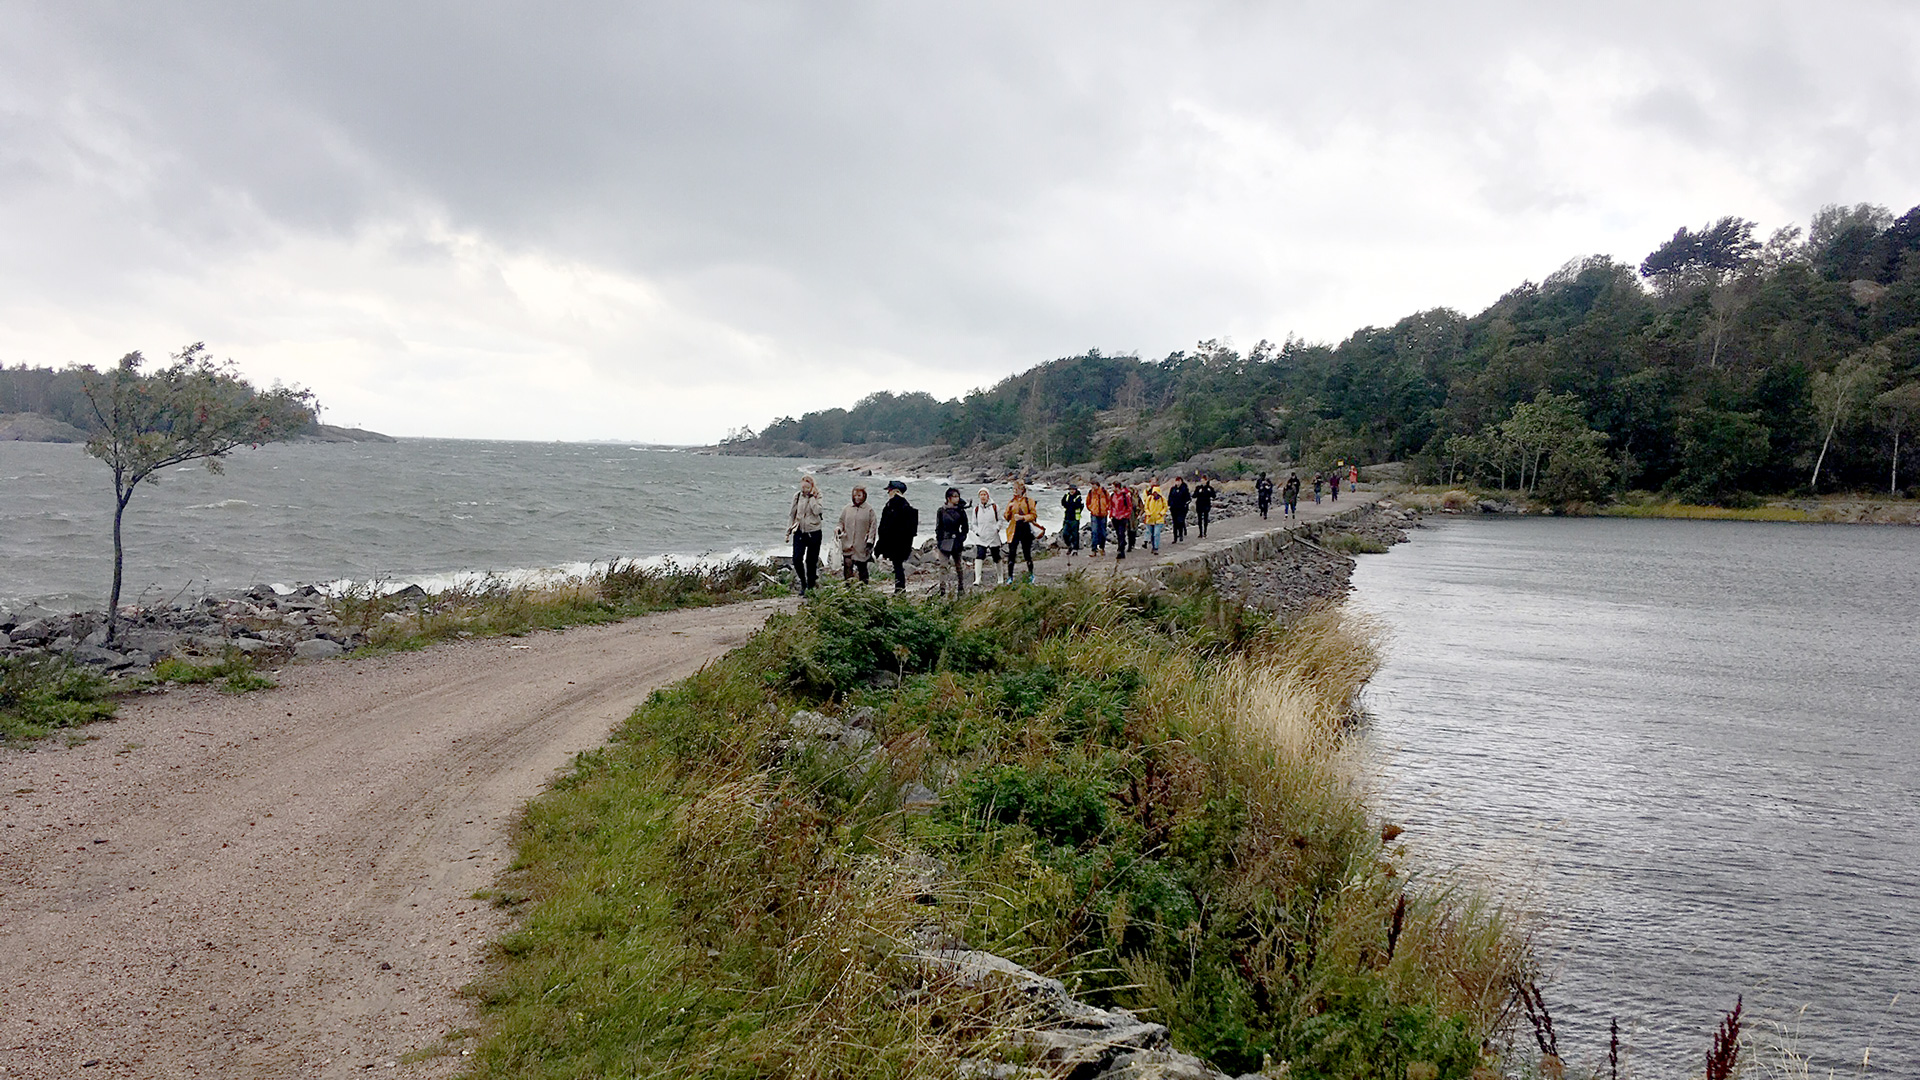 People crossing a neck of land between Vallisaari and Kuninkaansaari islands.